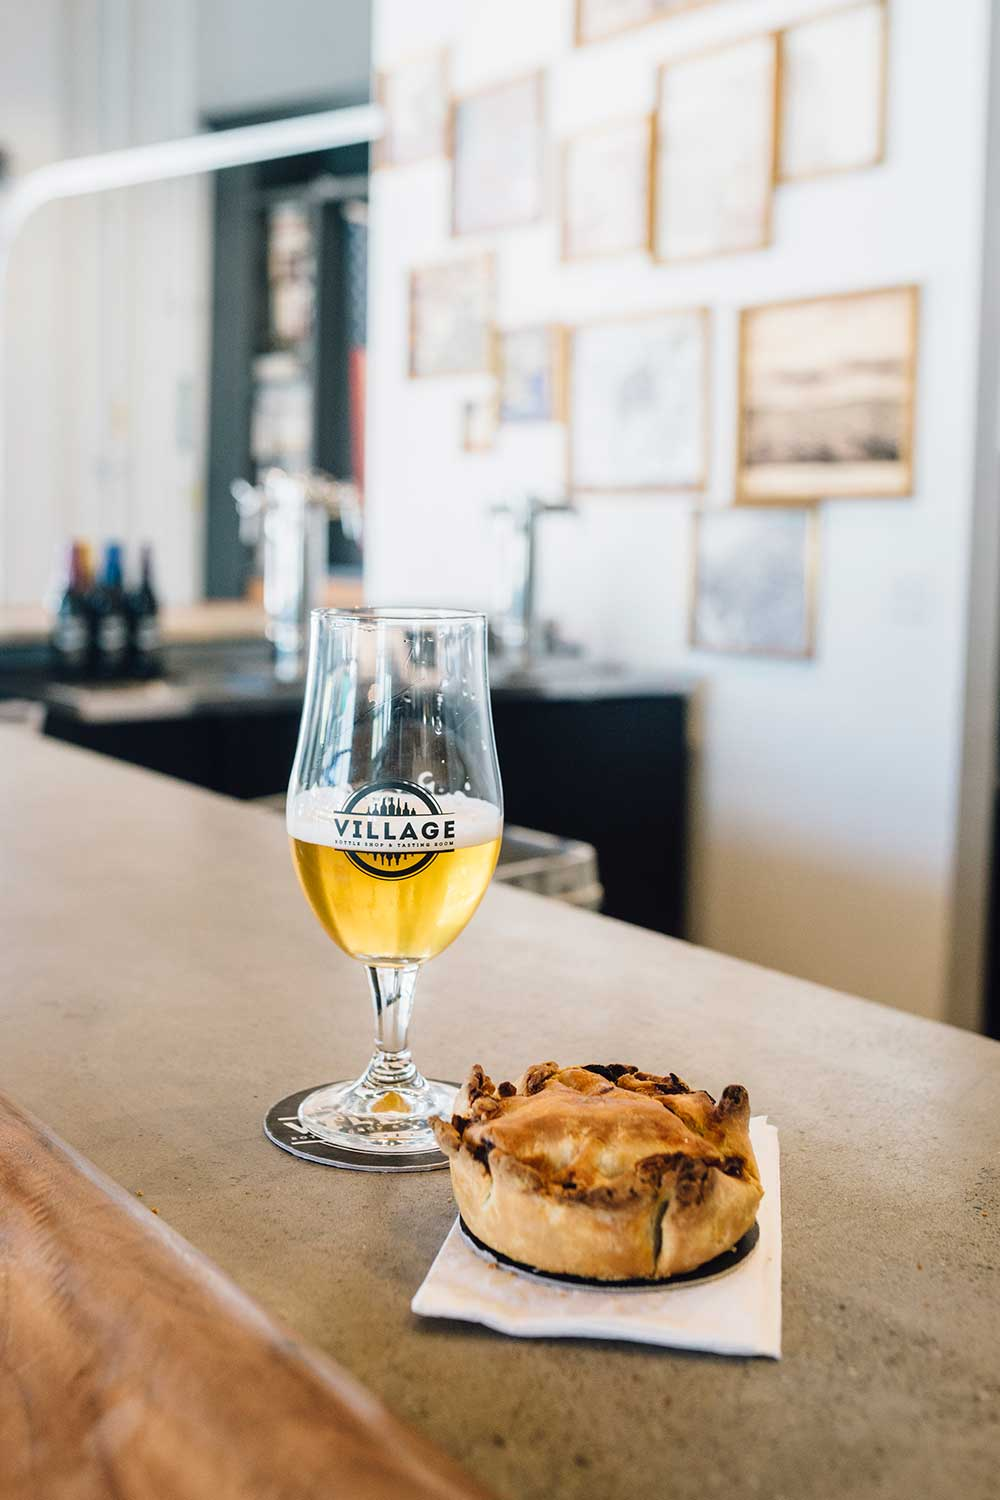 Pair your pint with house made savory pot pies at Village Bottle Shop and Tasting Room in Kaka'ako.